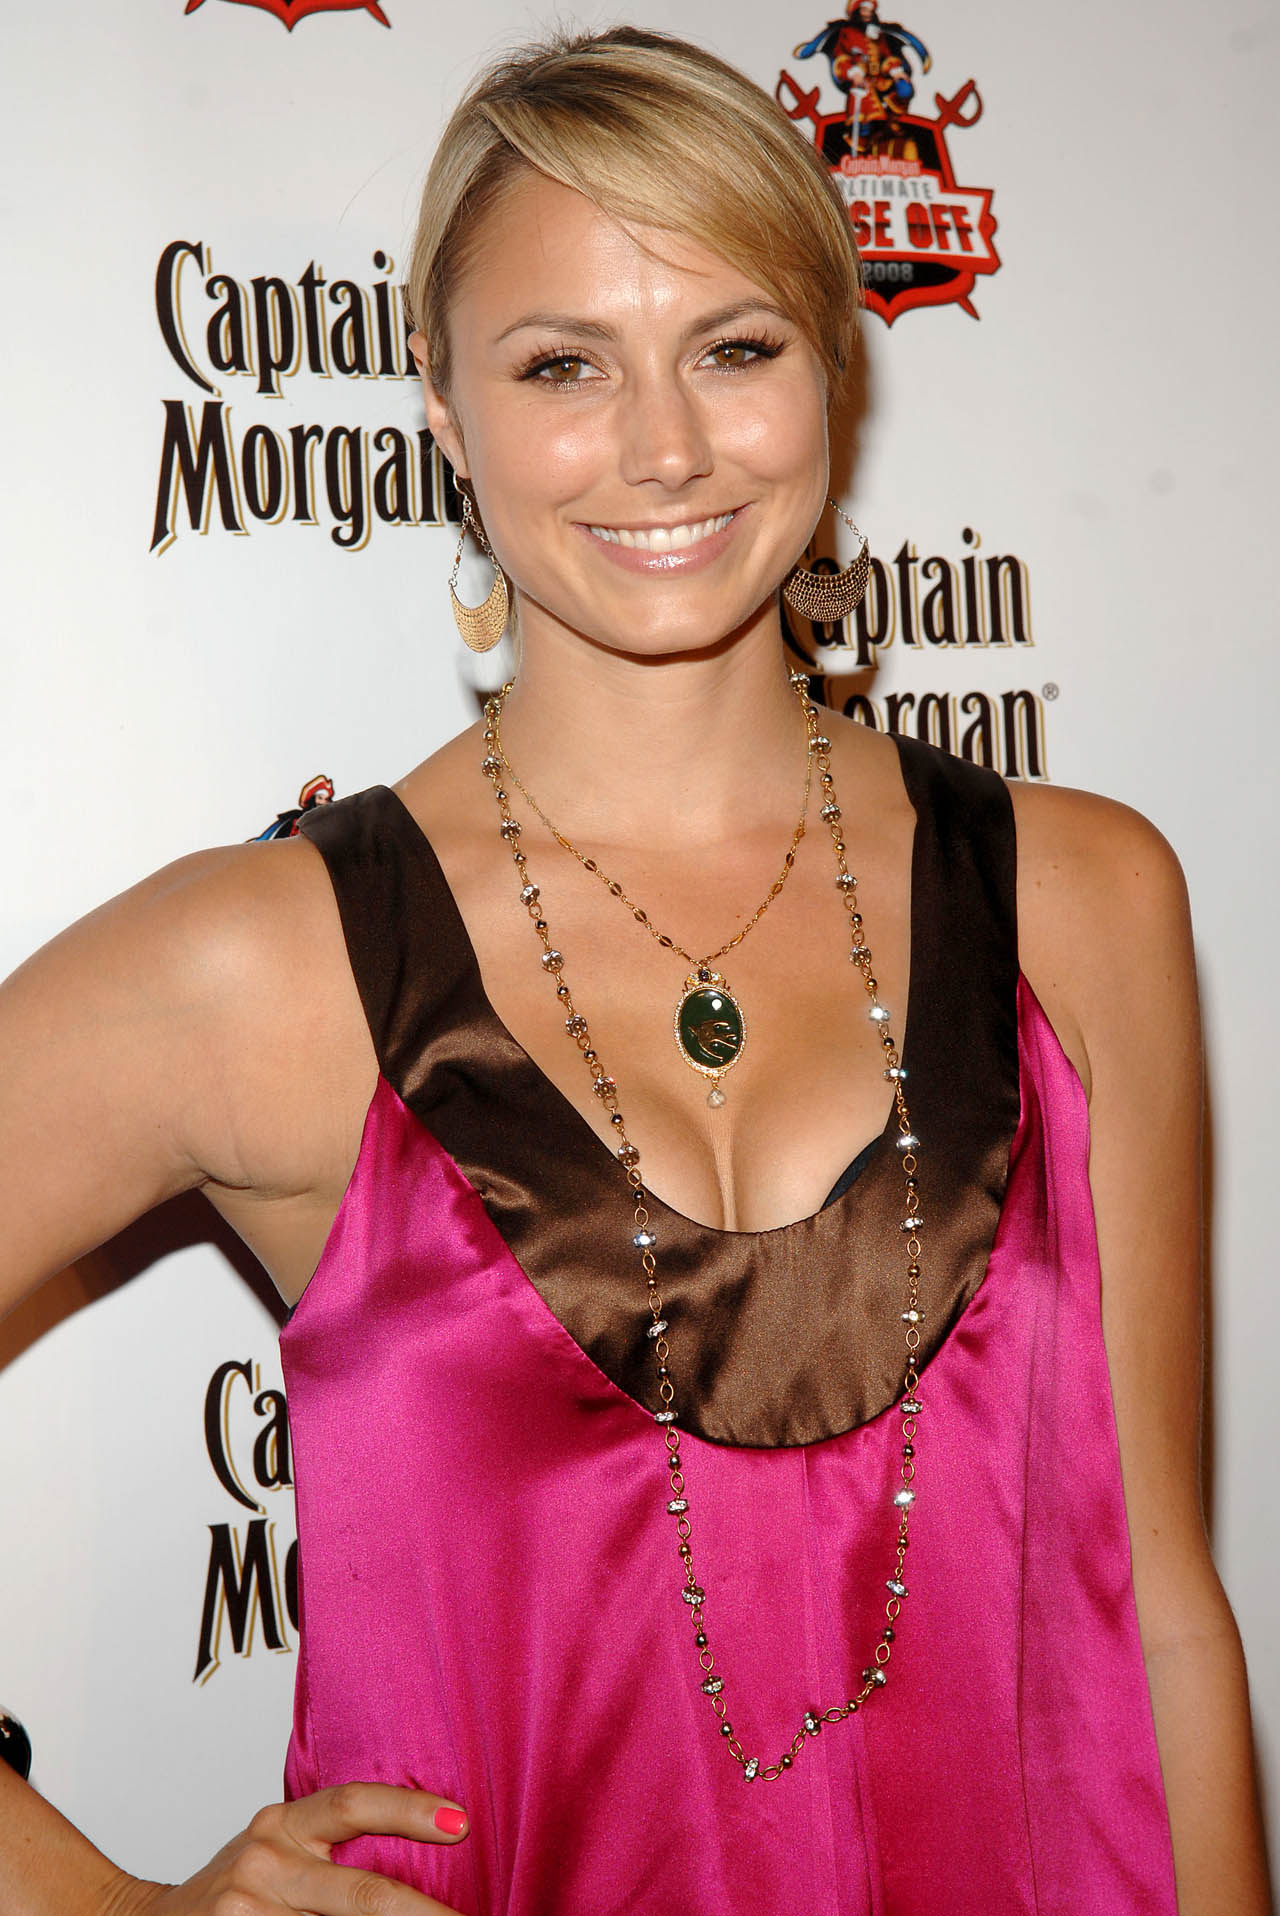 Pity, Stacy keibler fhm amusing topic